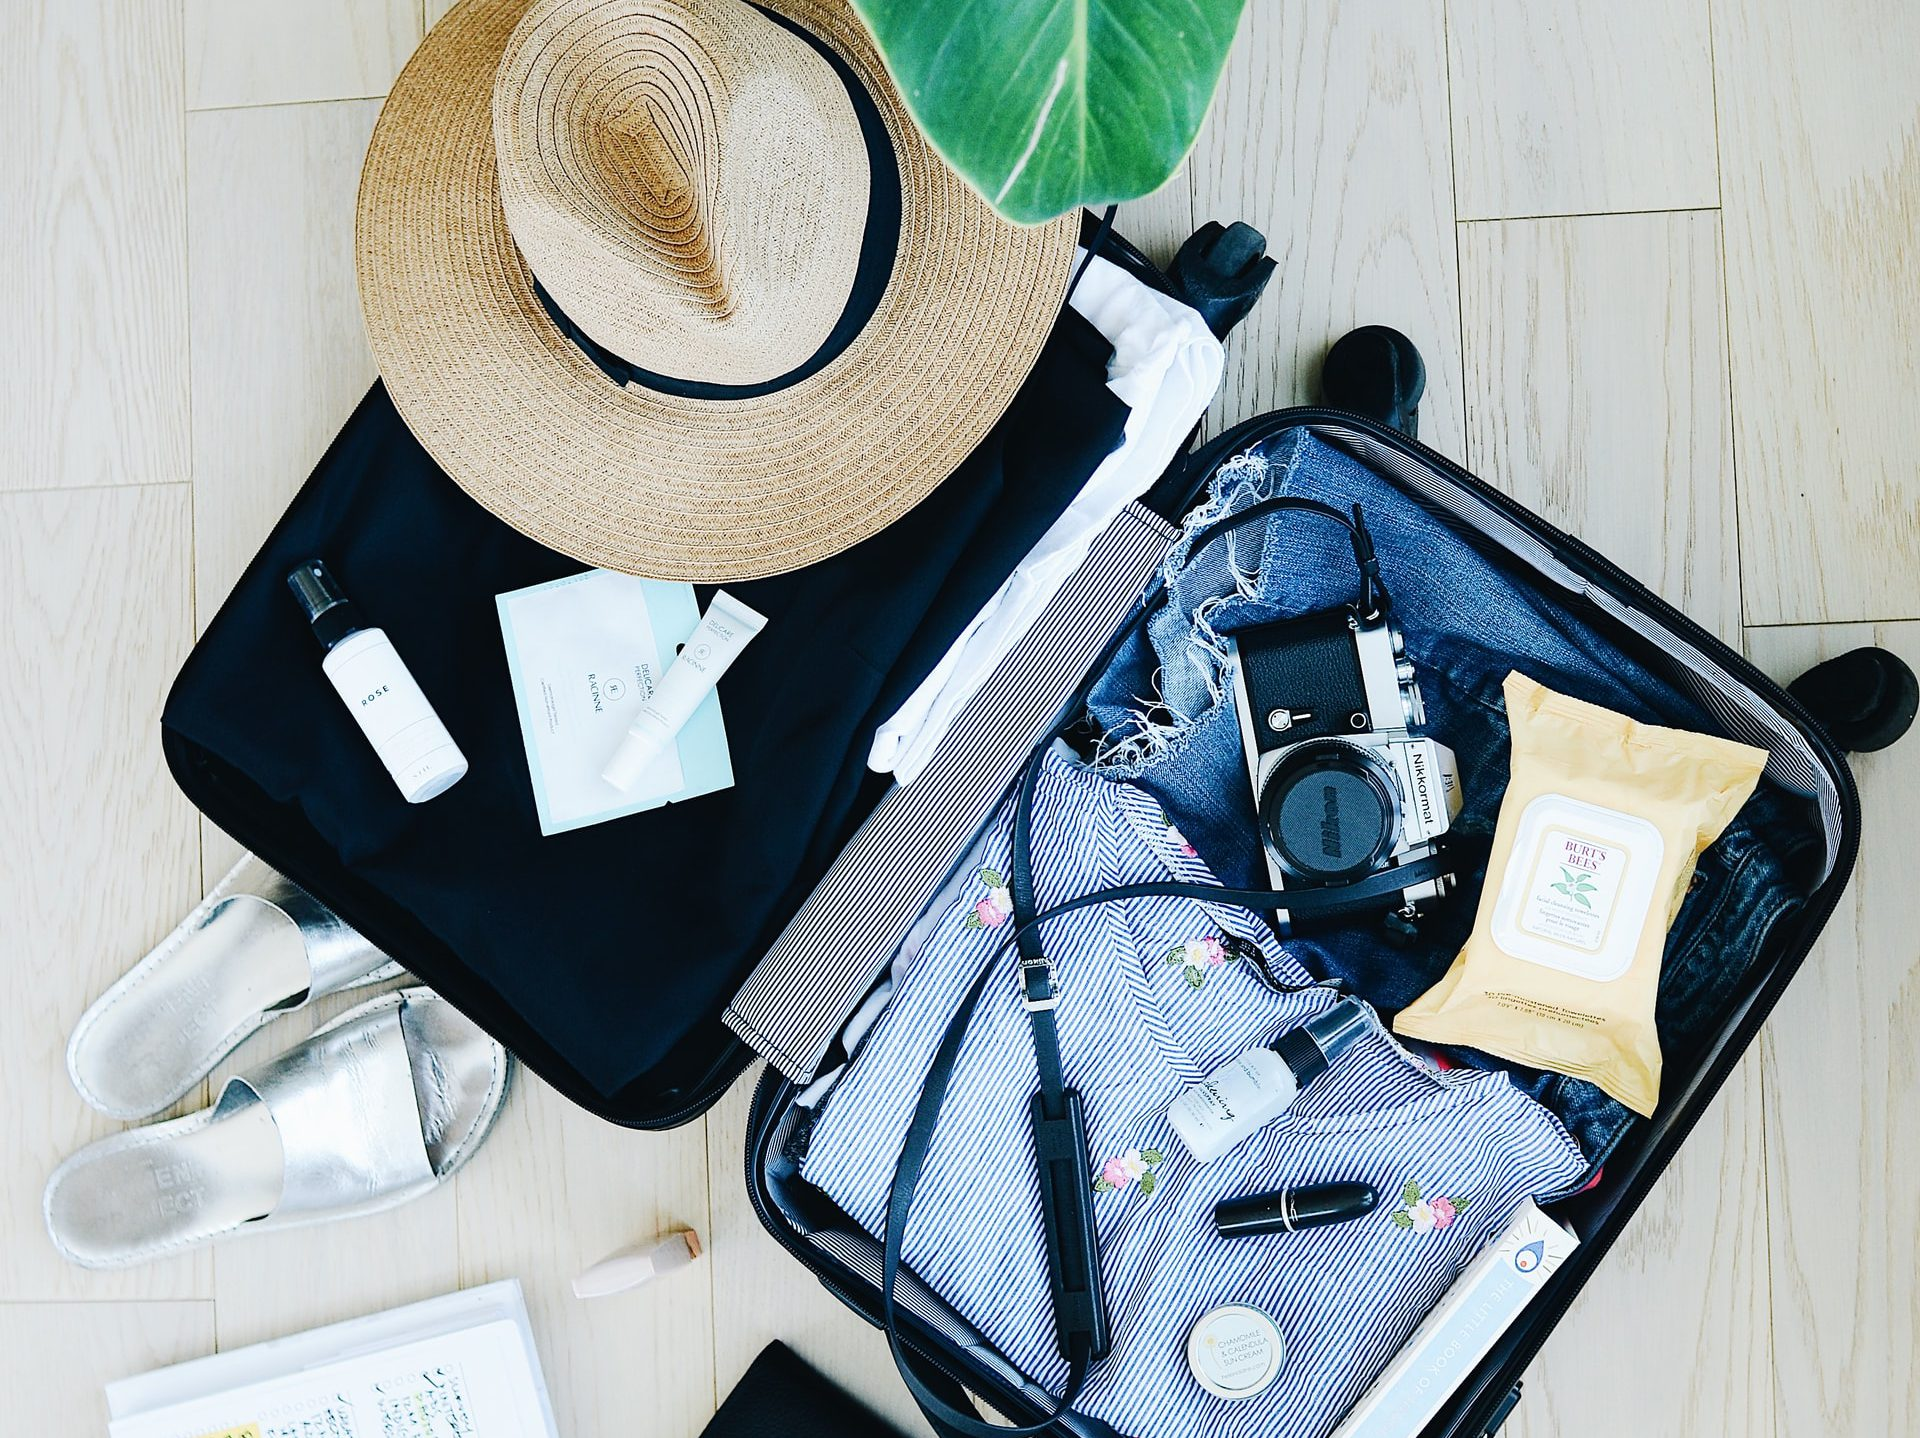 Mobile apps can be useful for packing